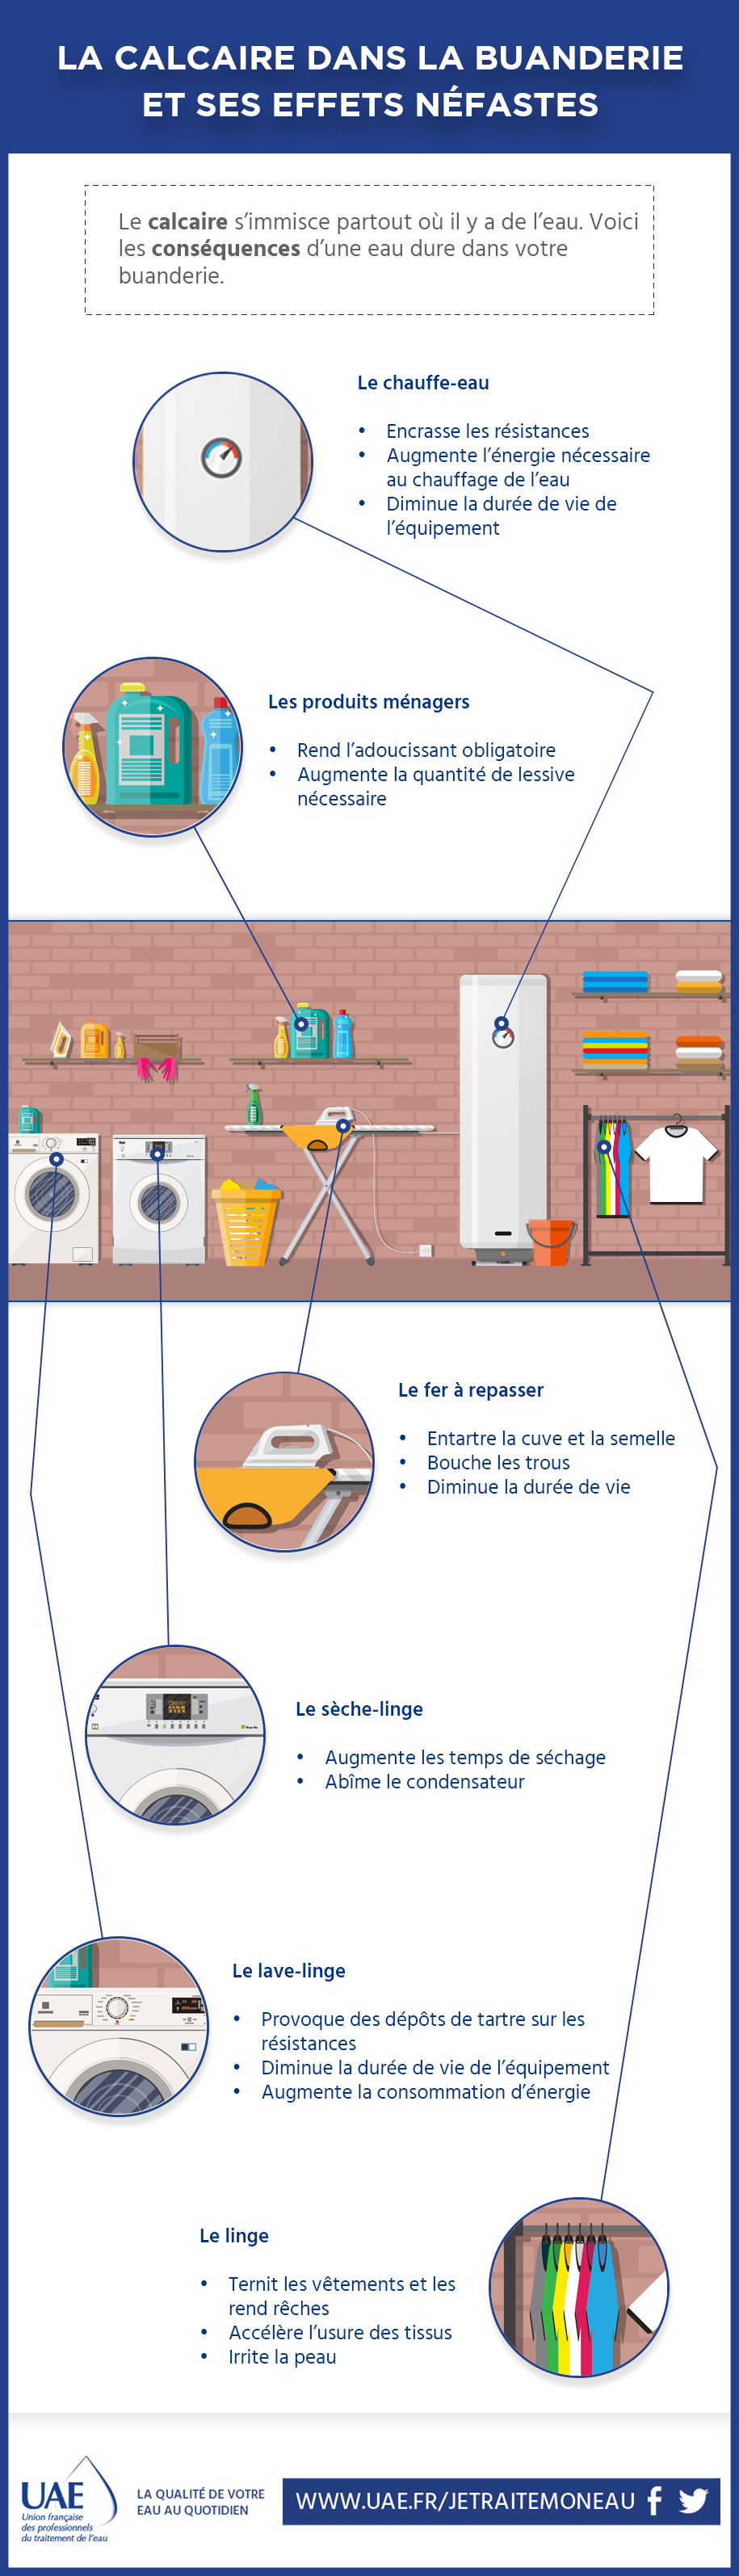 infographie calcaire buanderie